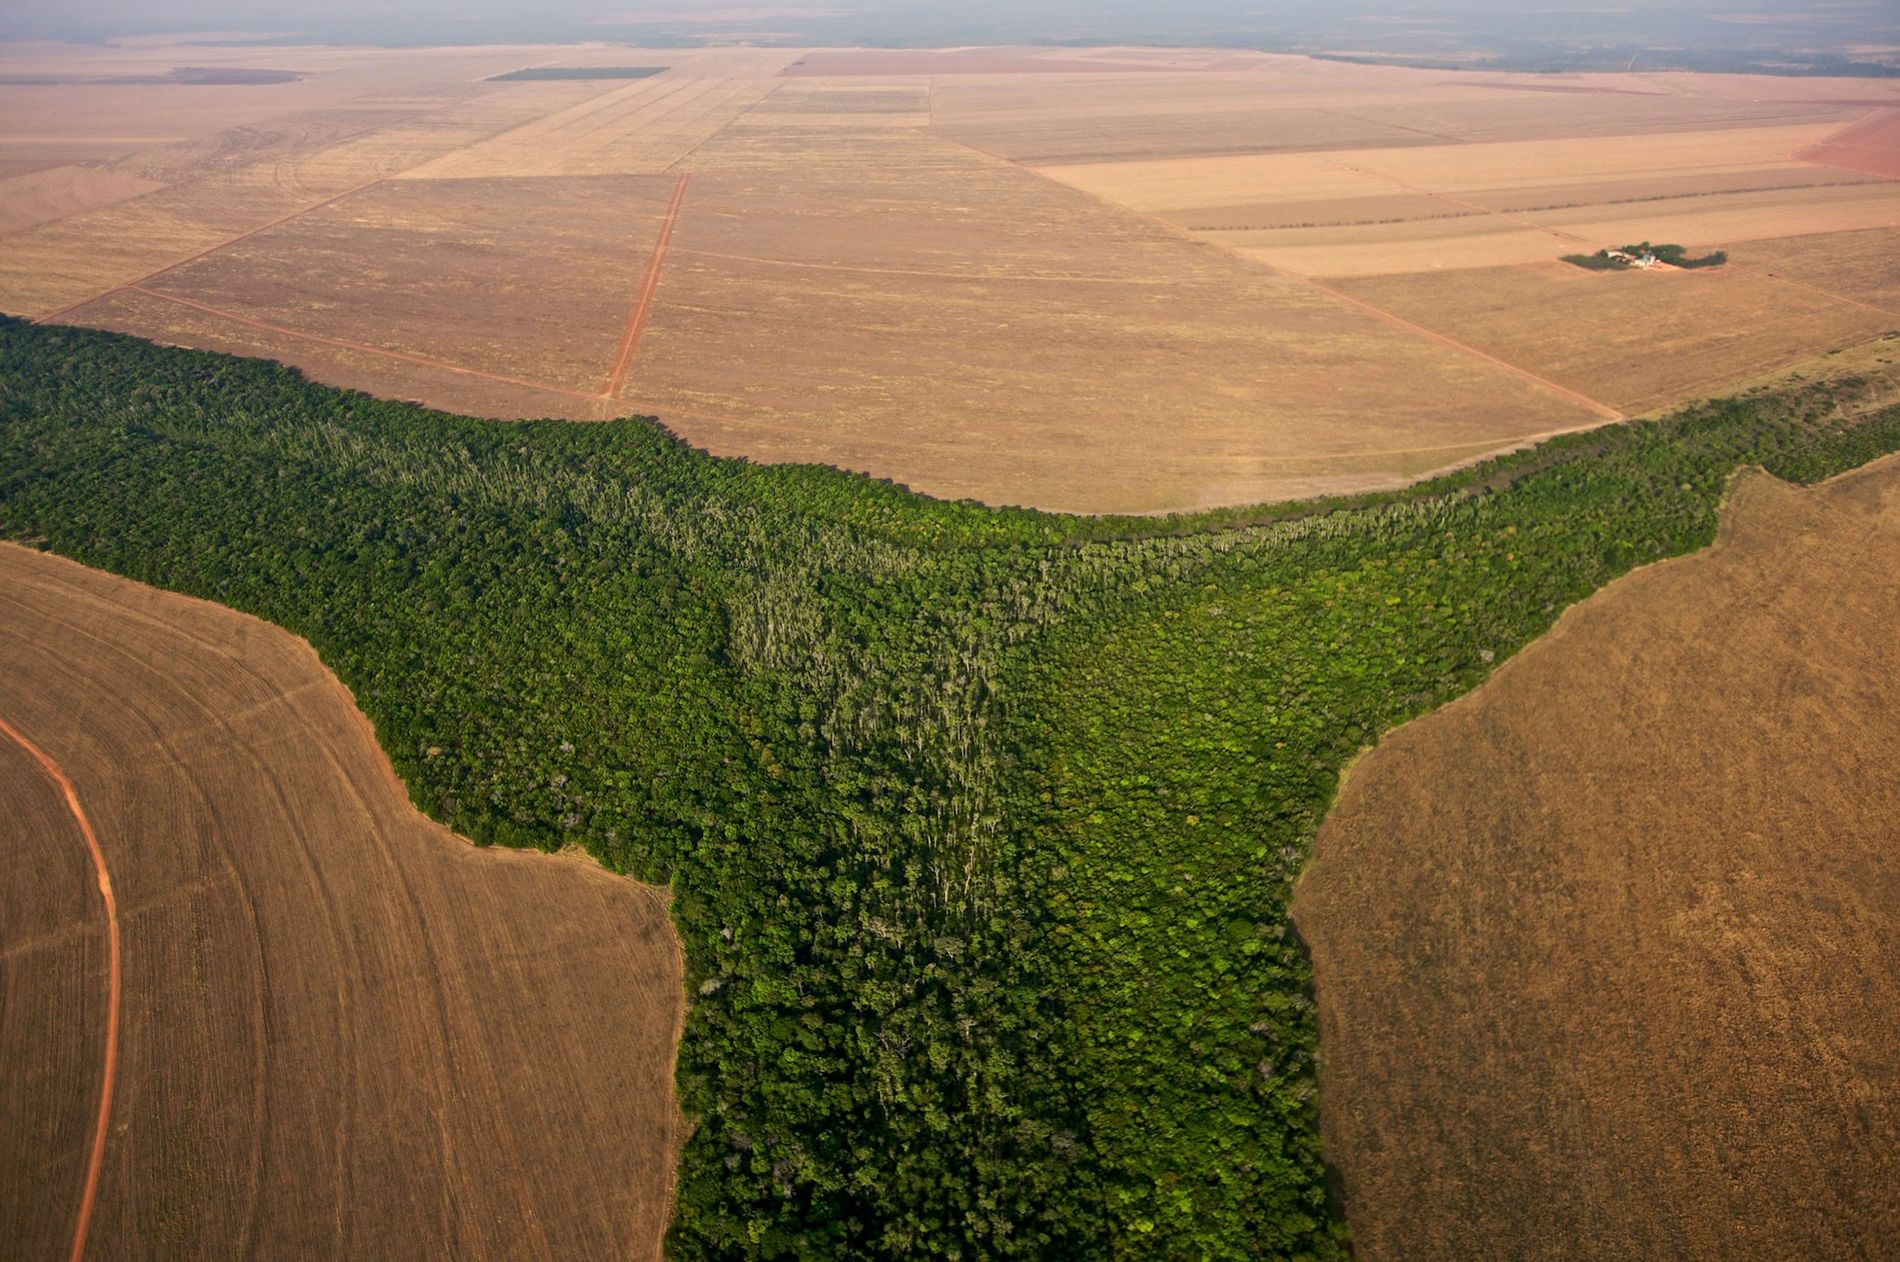 Brazil is one of several key countries where deforestation must be limited in order to stave off global warming, a new international report says.